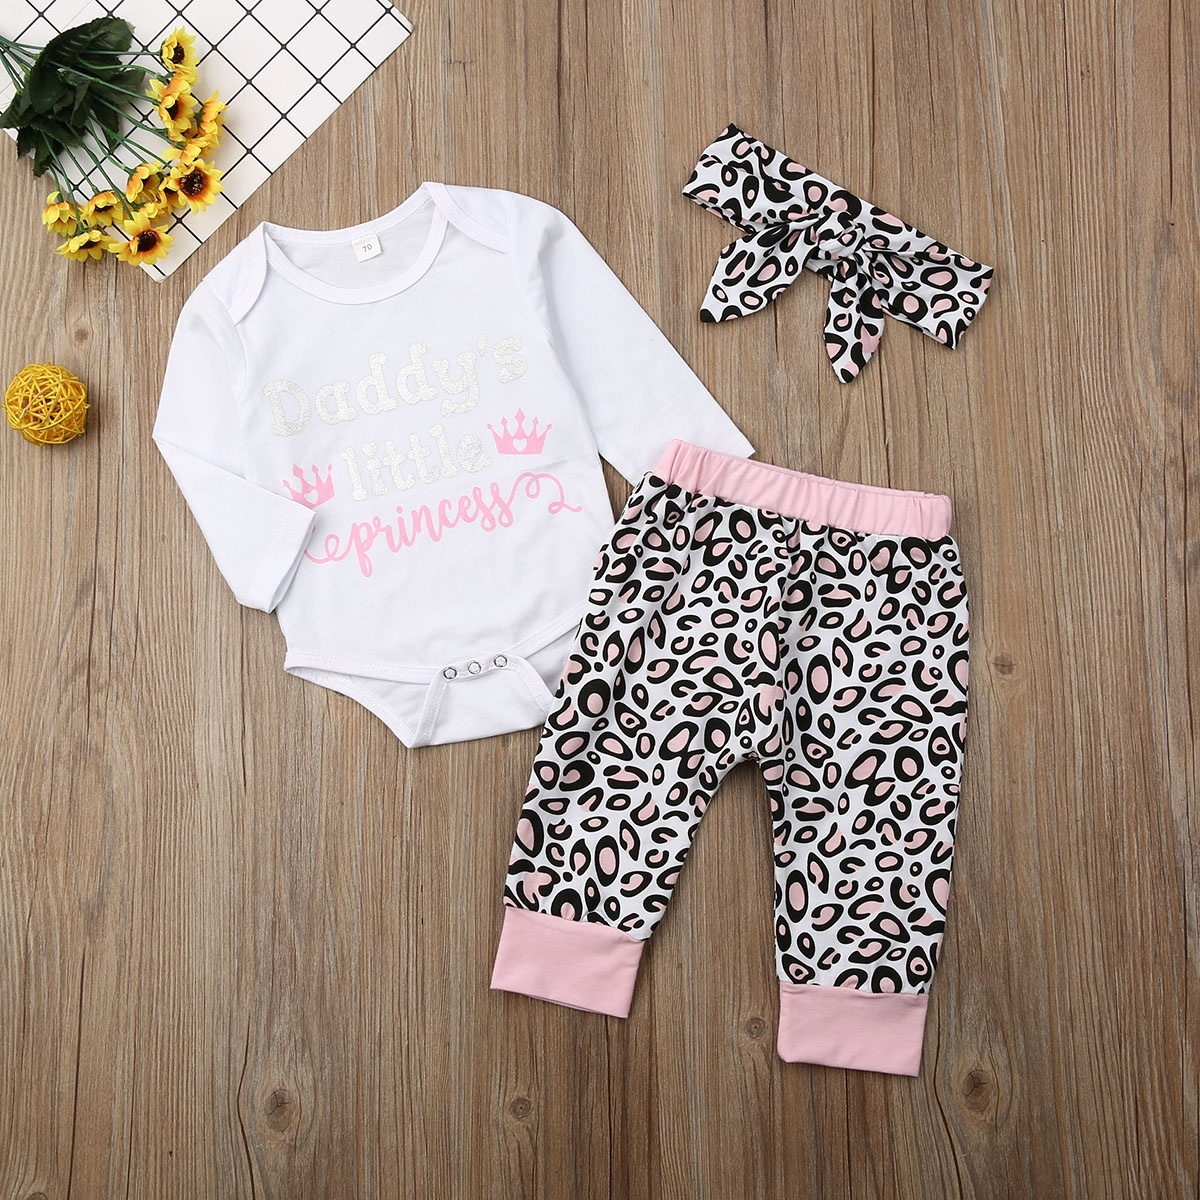 Baby boy Outfits,Finess Toddler Infant Baby Print Long Sleeves Romper+Pants+Headband Kids Clothes Outfits 3 Sets